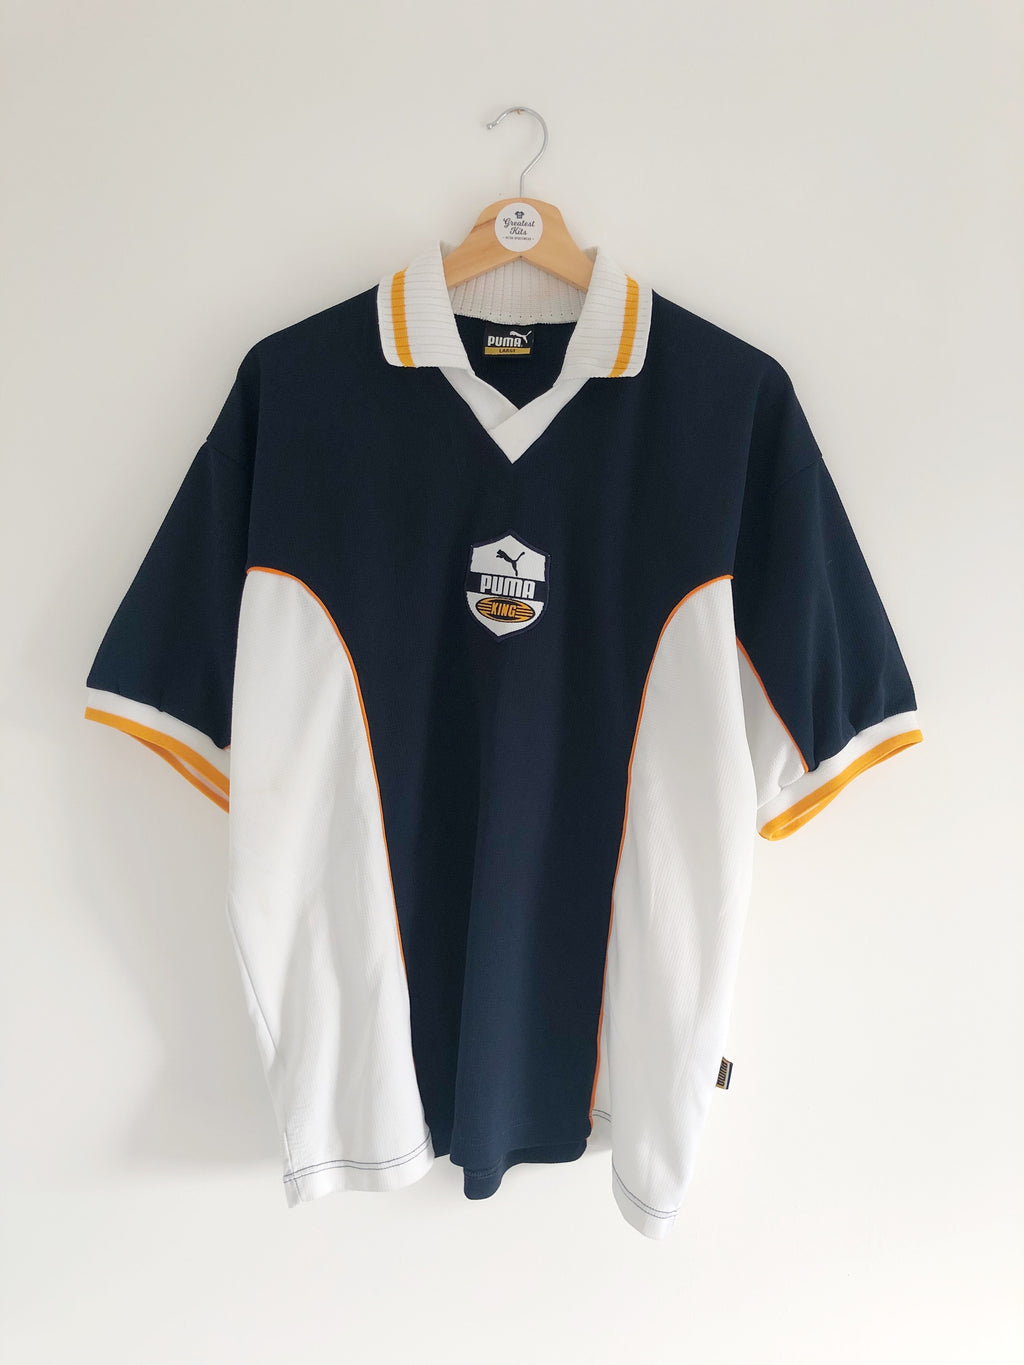 1996/97 Puma King Training Shirt (L) 8.5/10